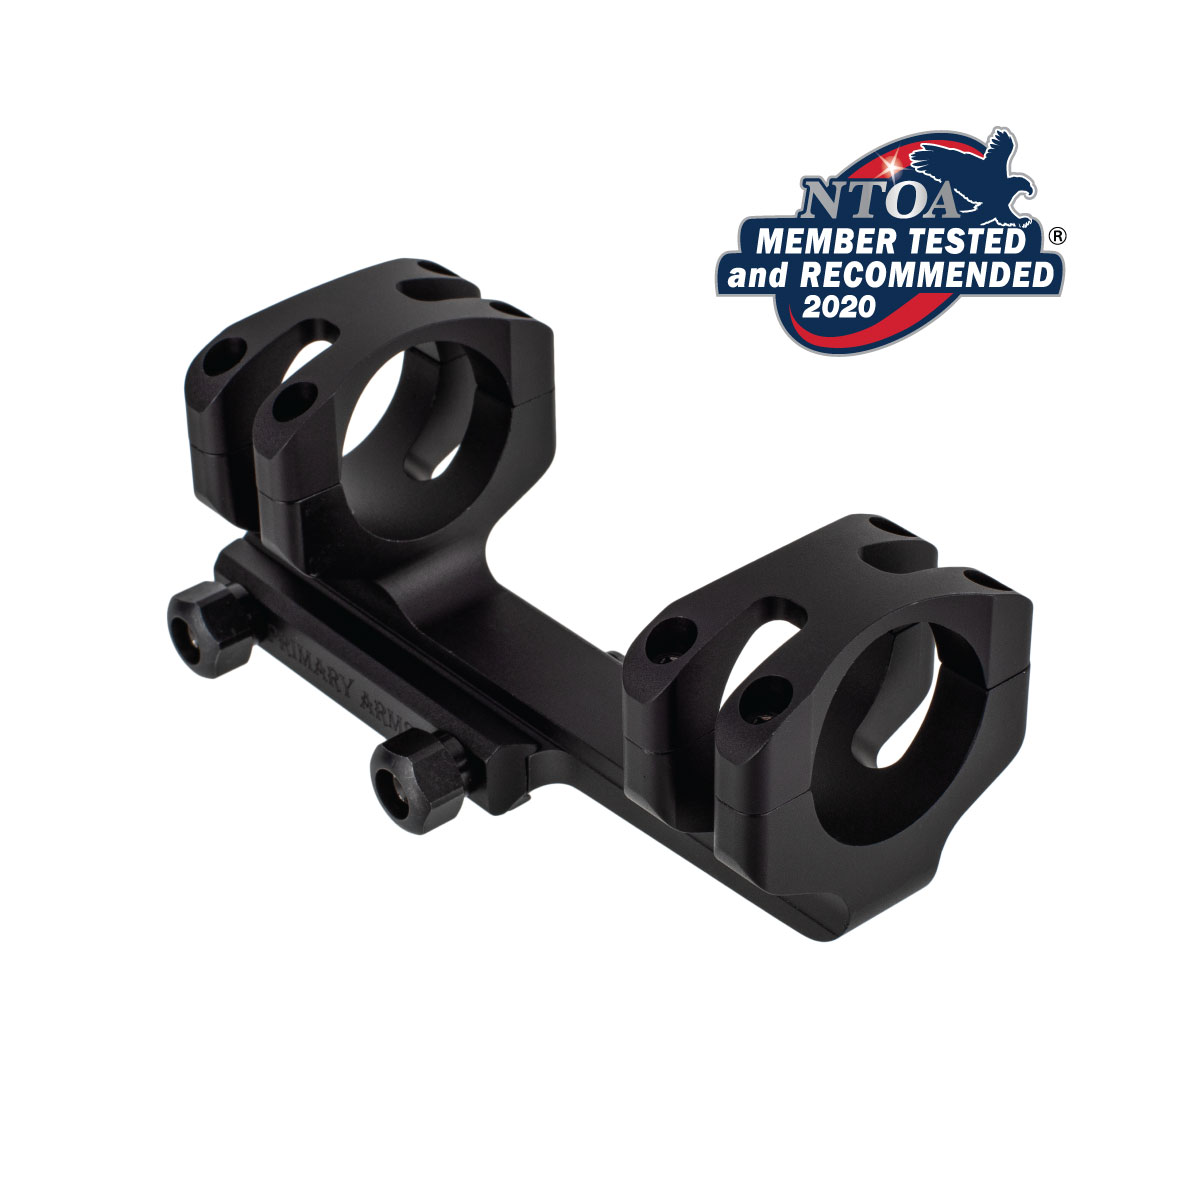 Primary Arms NTOA rated GLx Mount